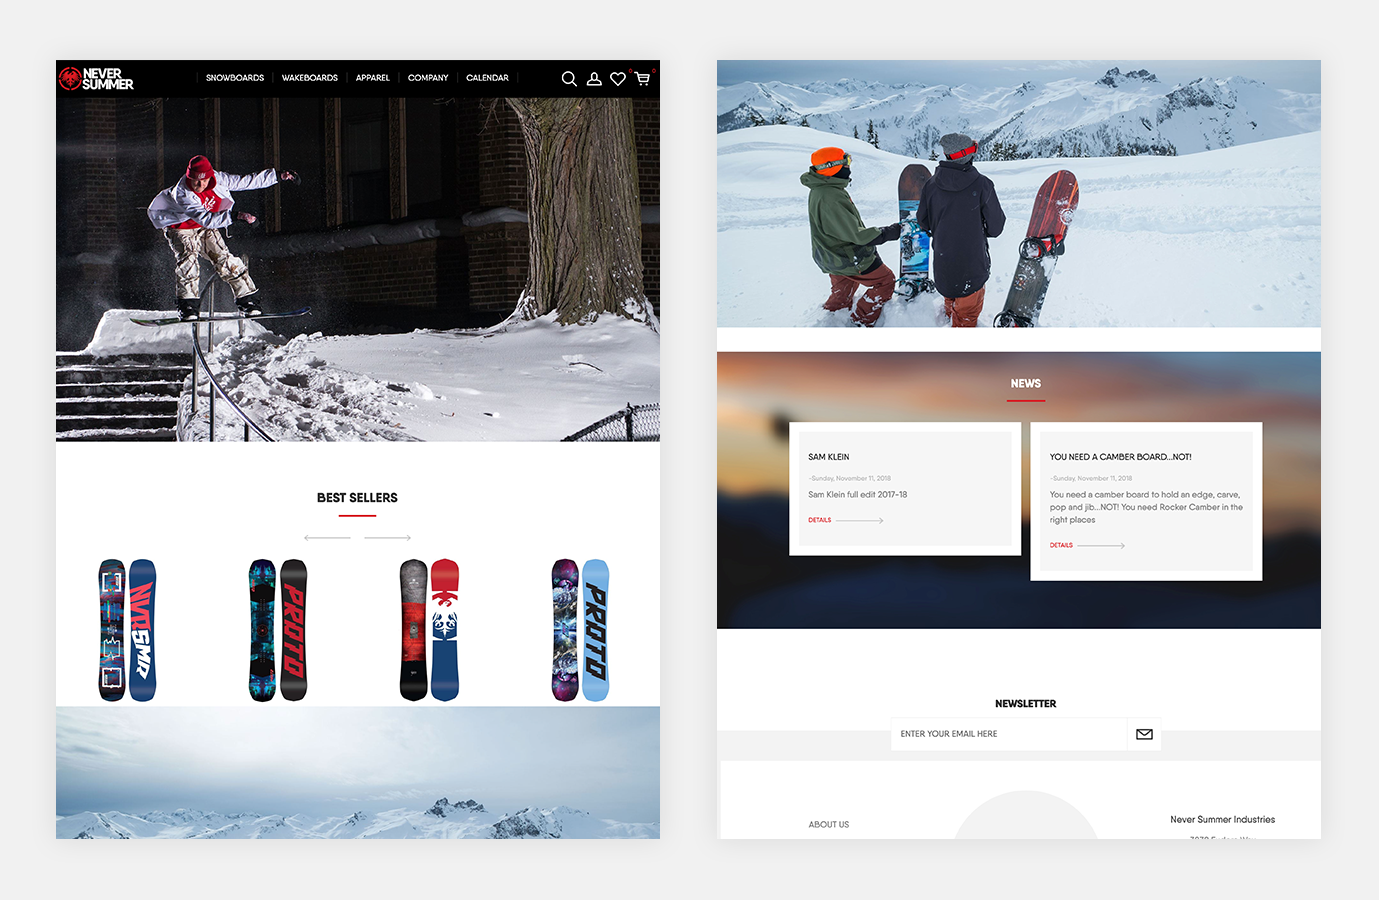 Screenshot of Never Summer website showing best selling snowboards